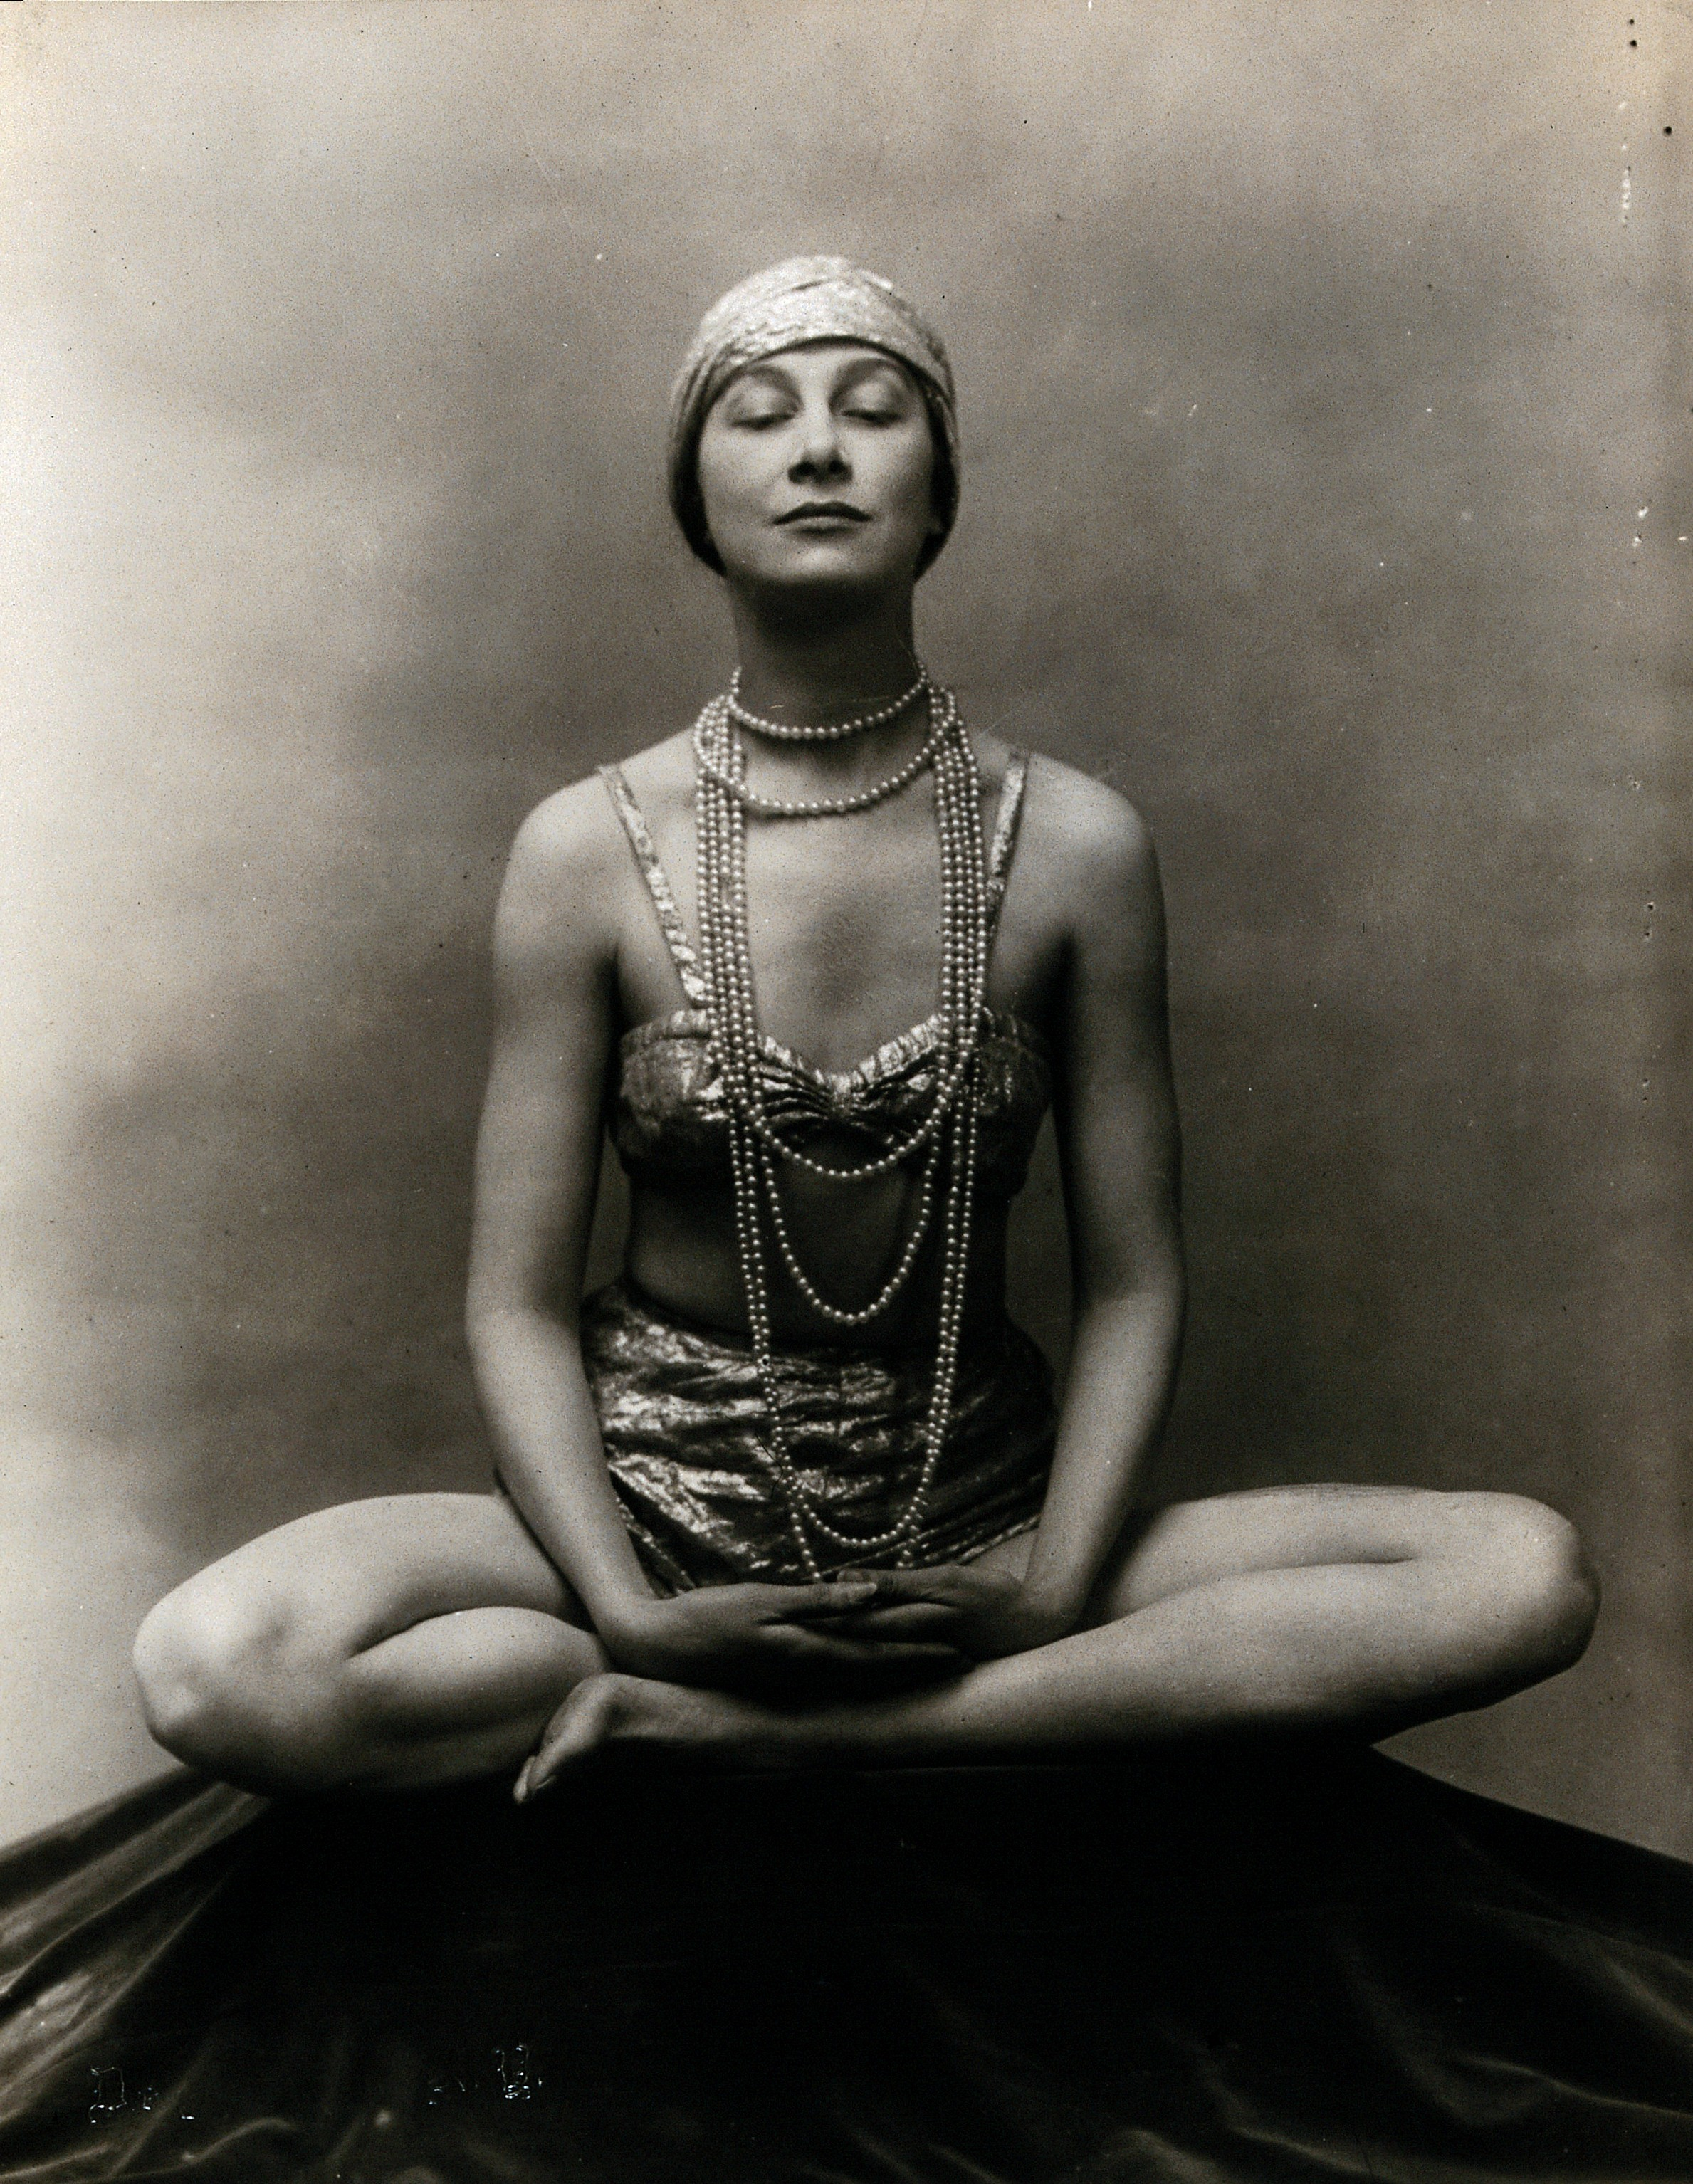 Marguerite Agniel in a Buddha position with her legs crossed Wellcome V0048585.jpg